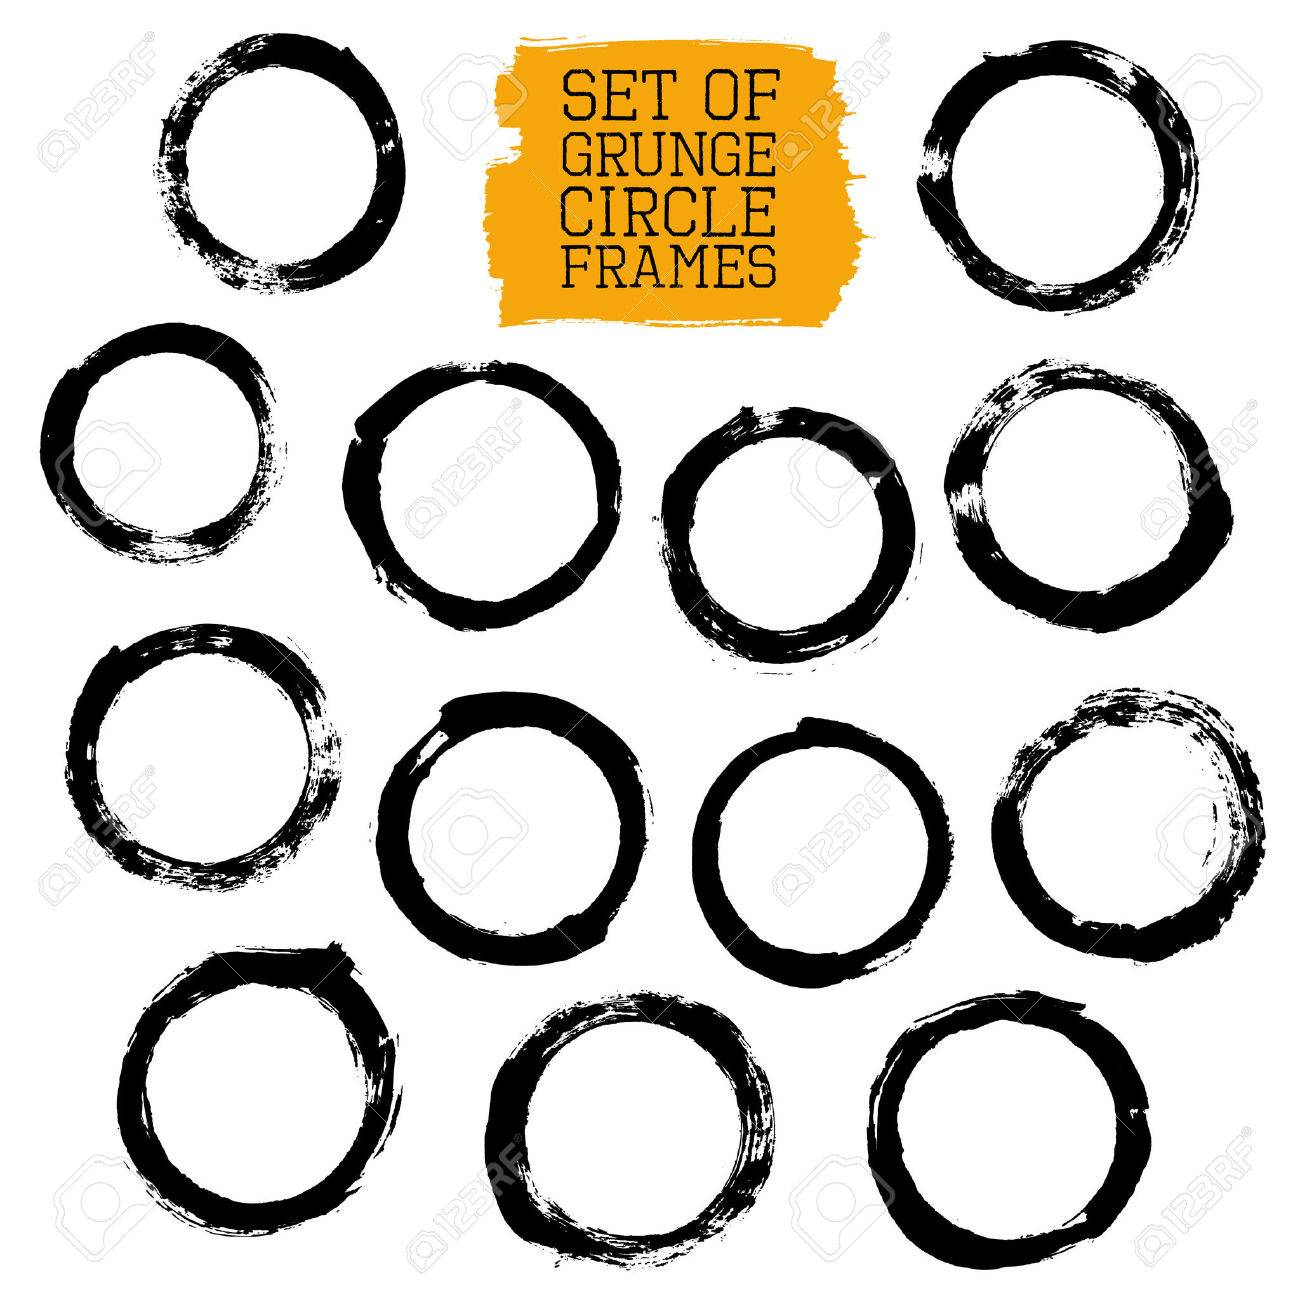 Vector Set Of Grunge Circle Frames. Collection Of Brush Strokes ...